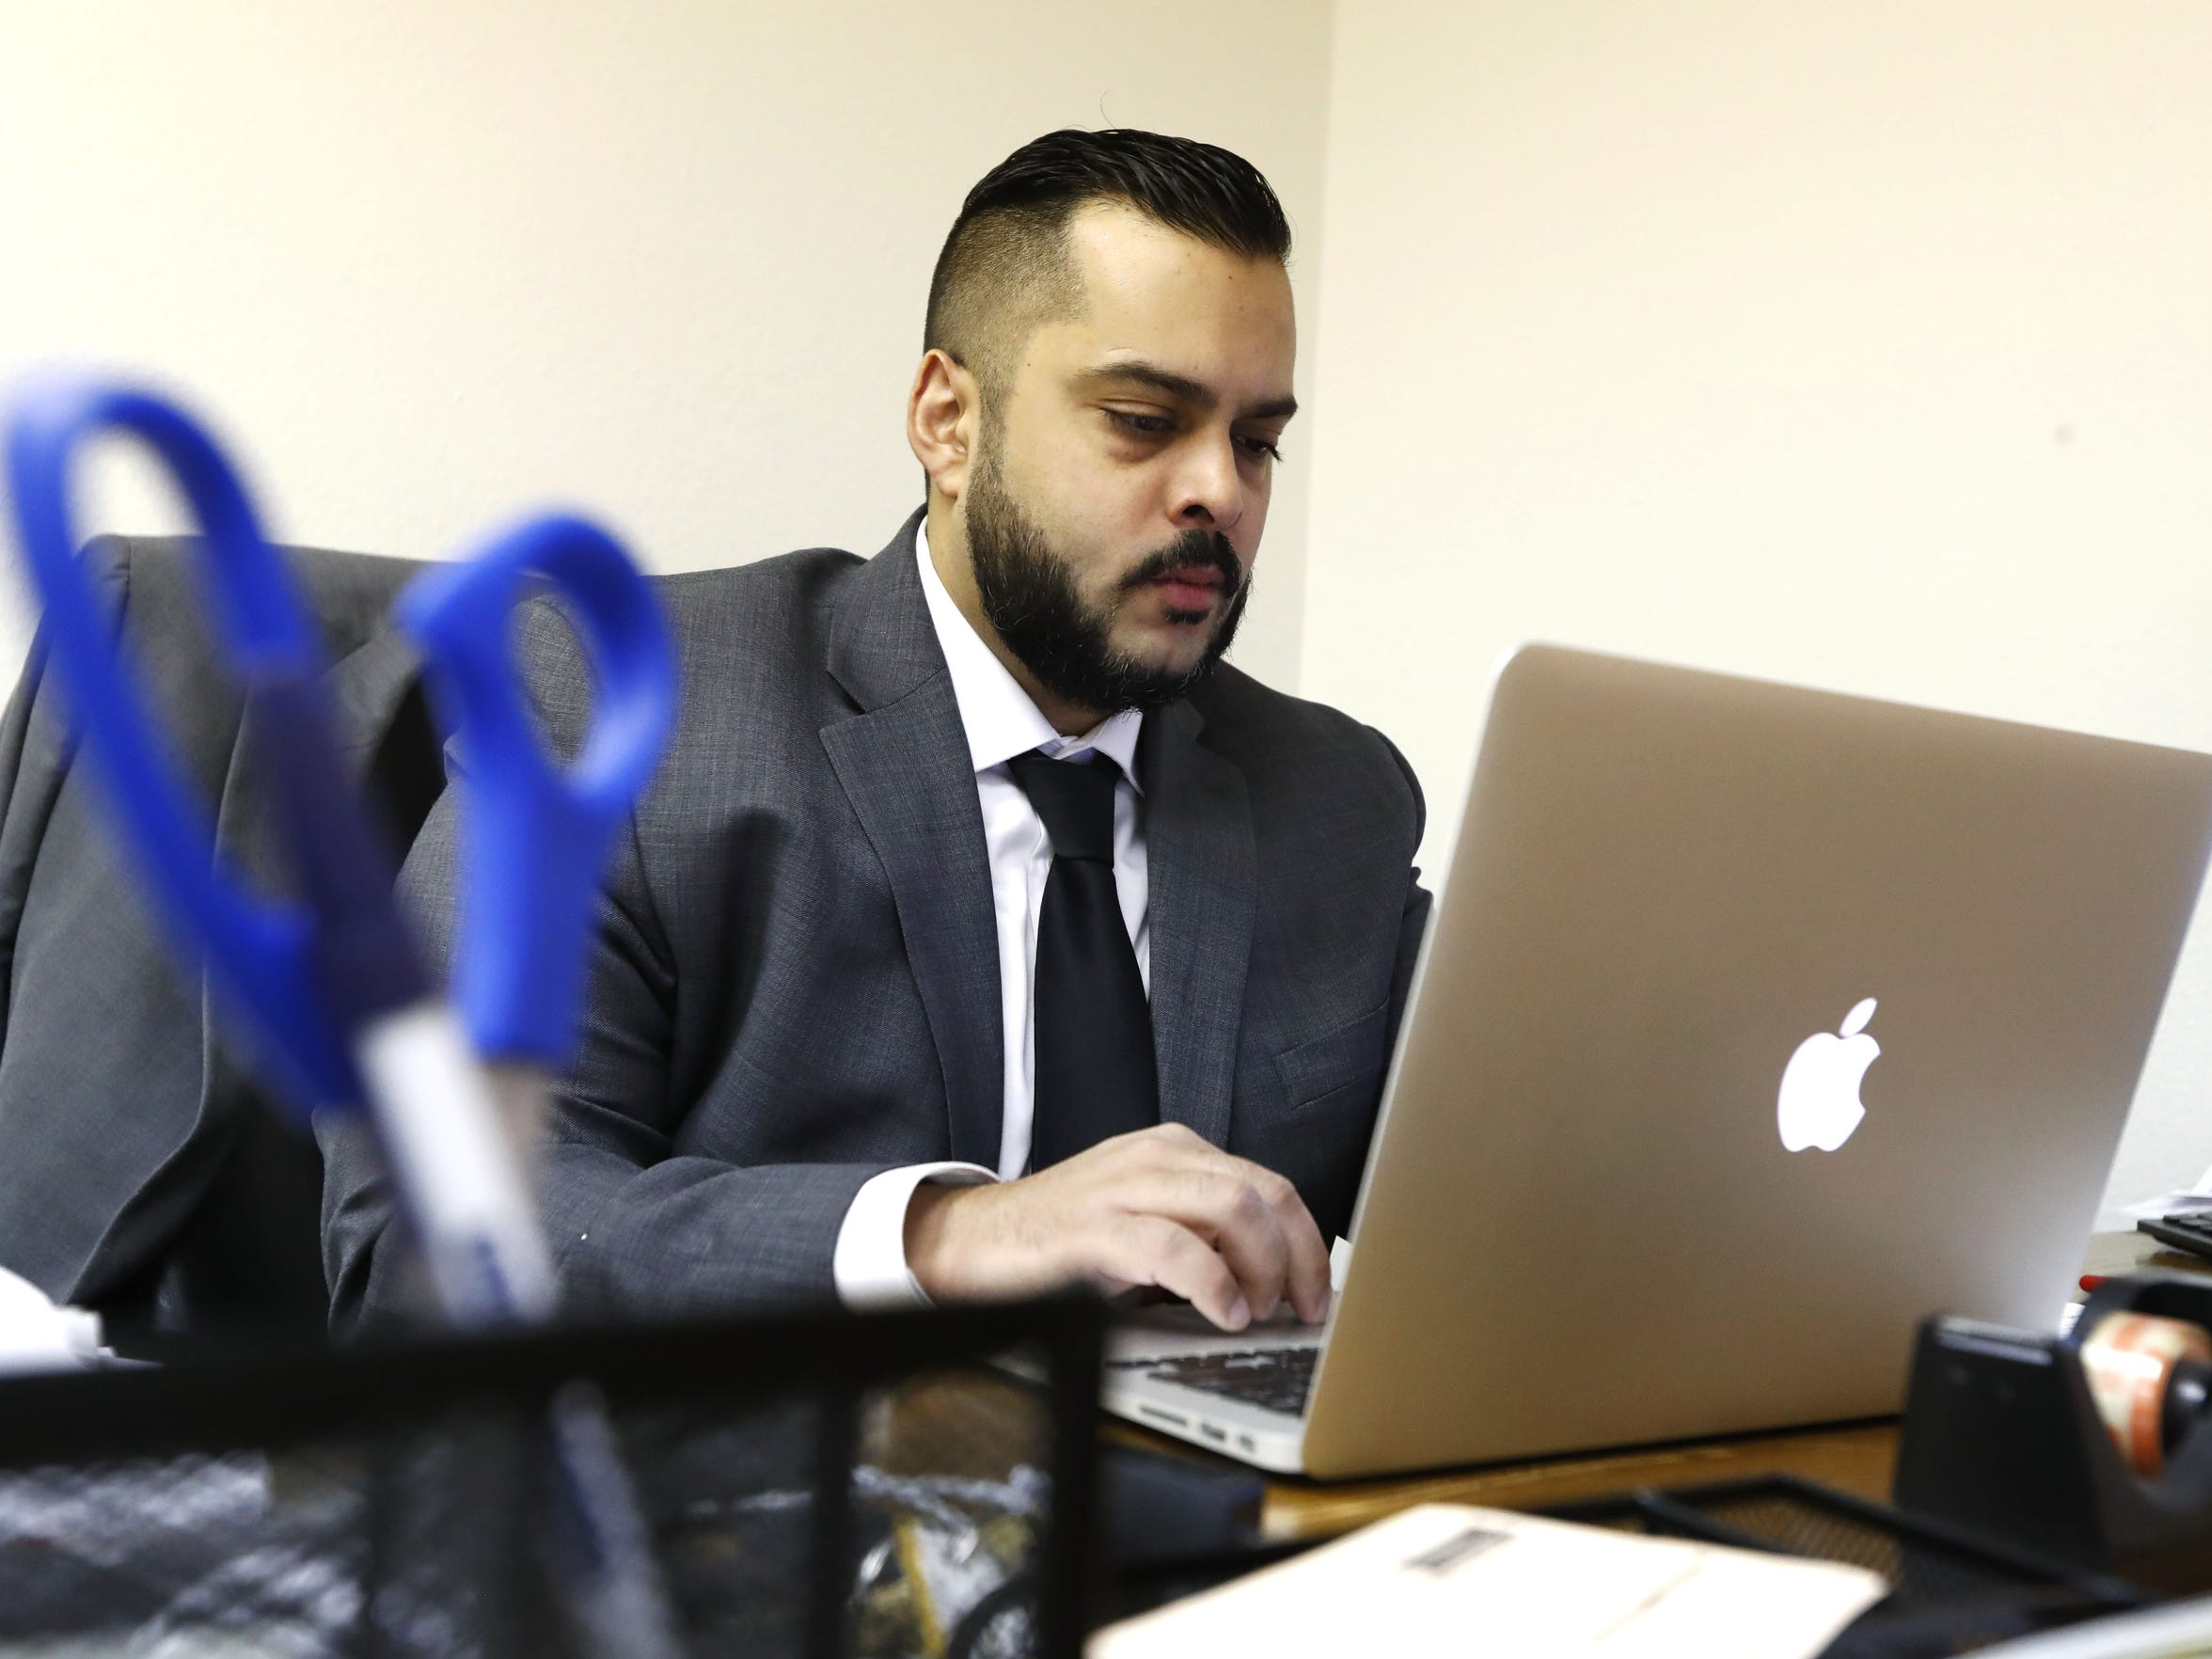 Imraan Siddiqi, the executive director of the Council